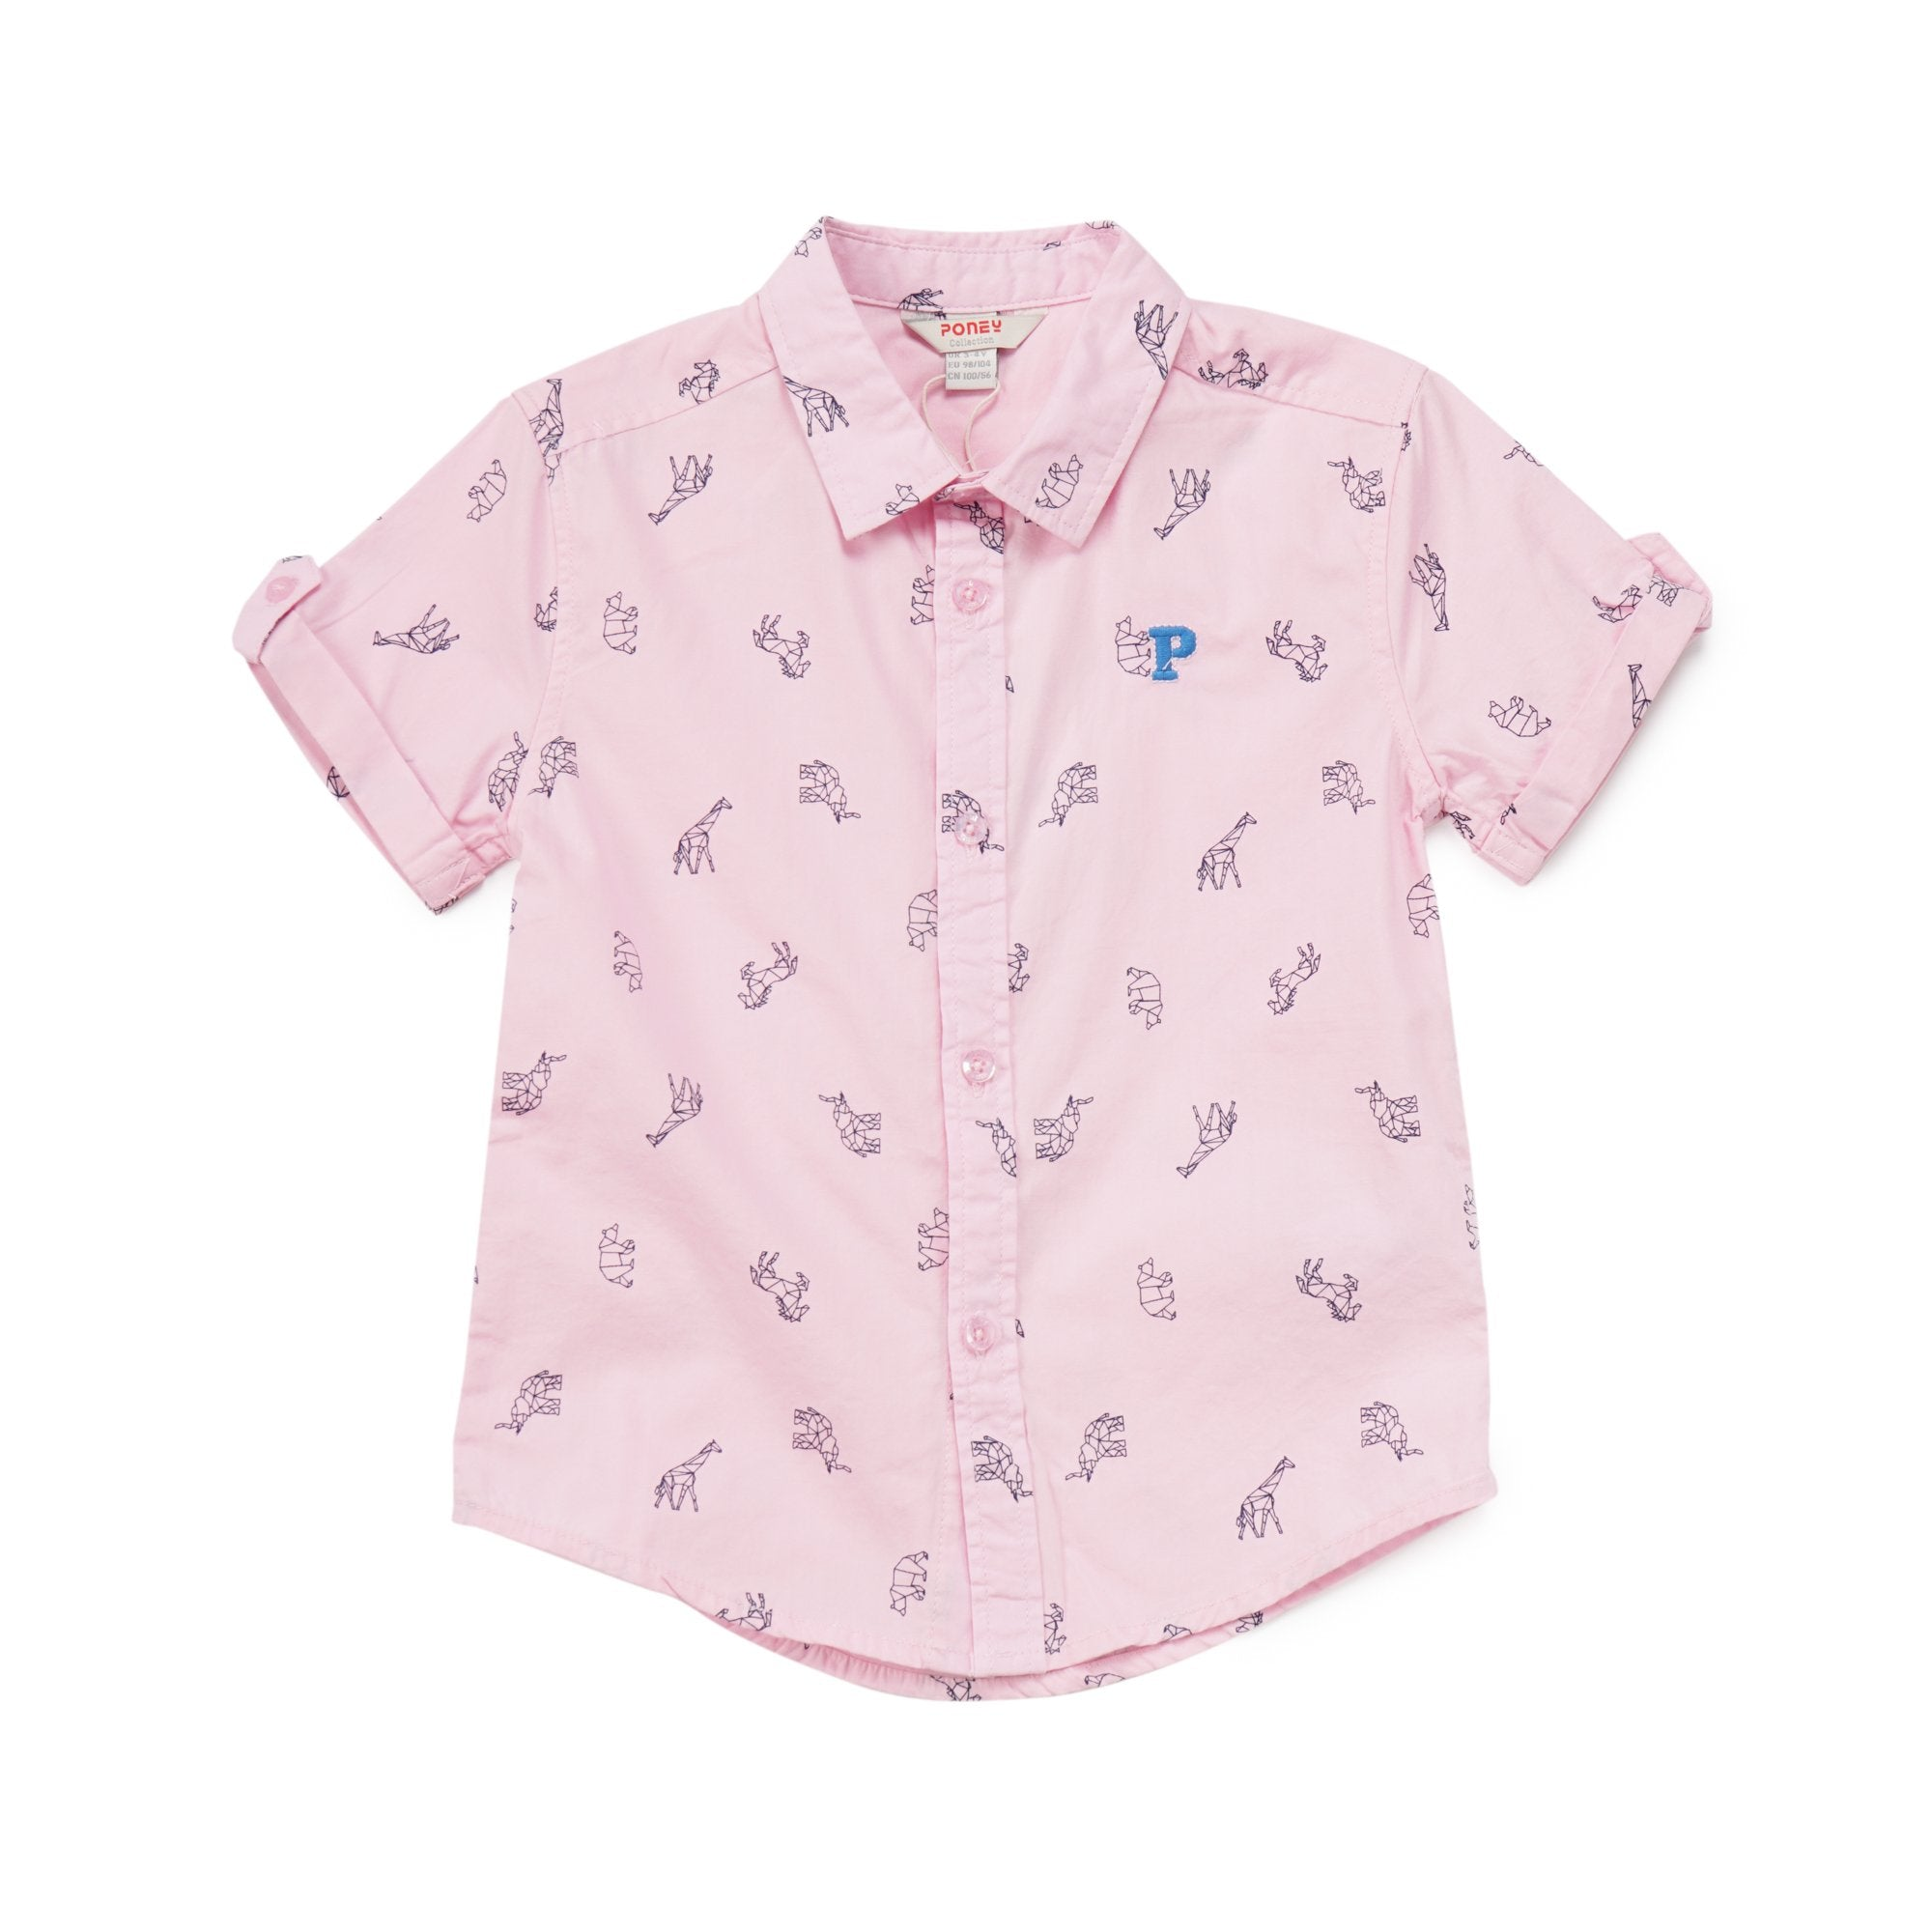 Poney Boys ShortSleeve Shirt 8053 (6mths-12yrs)